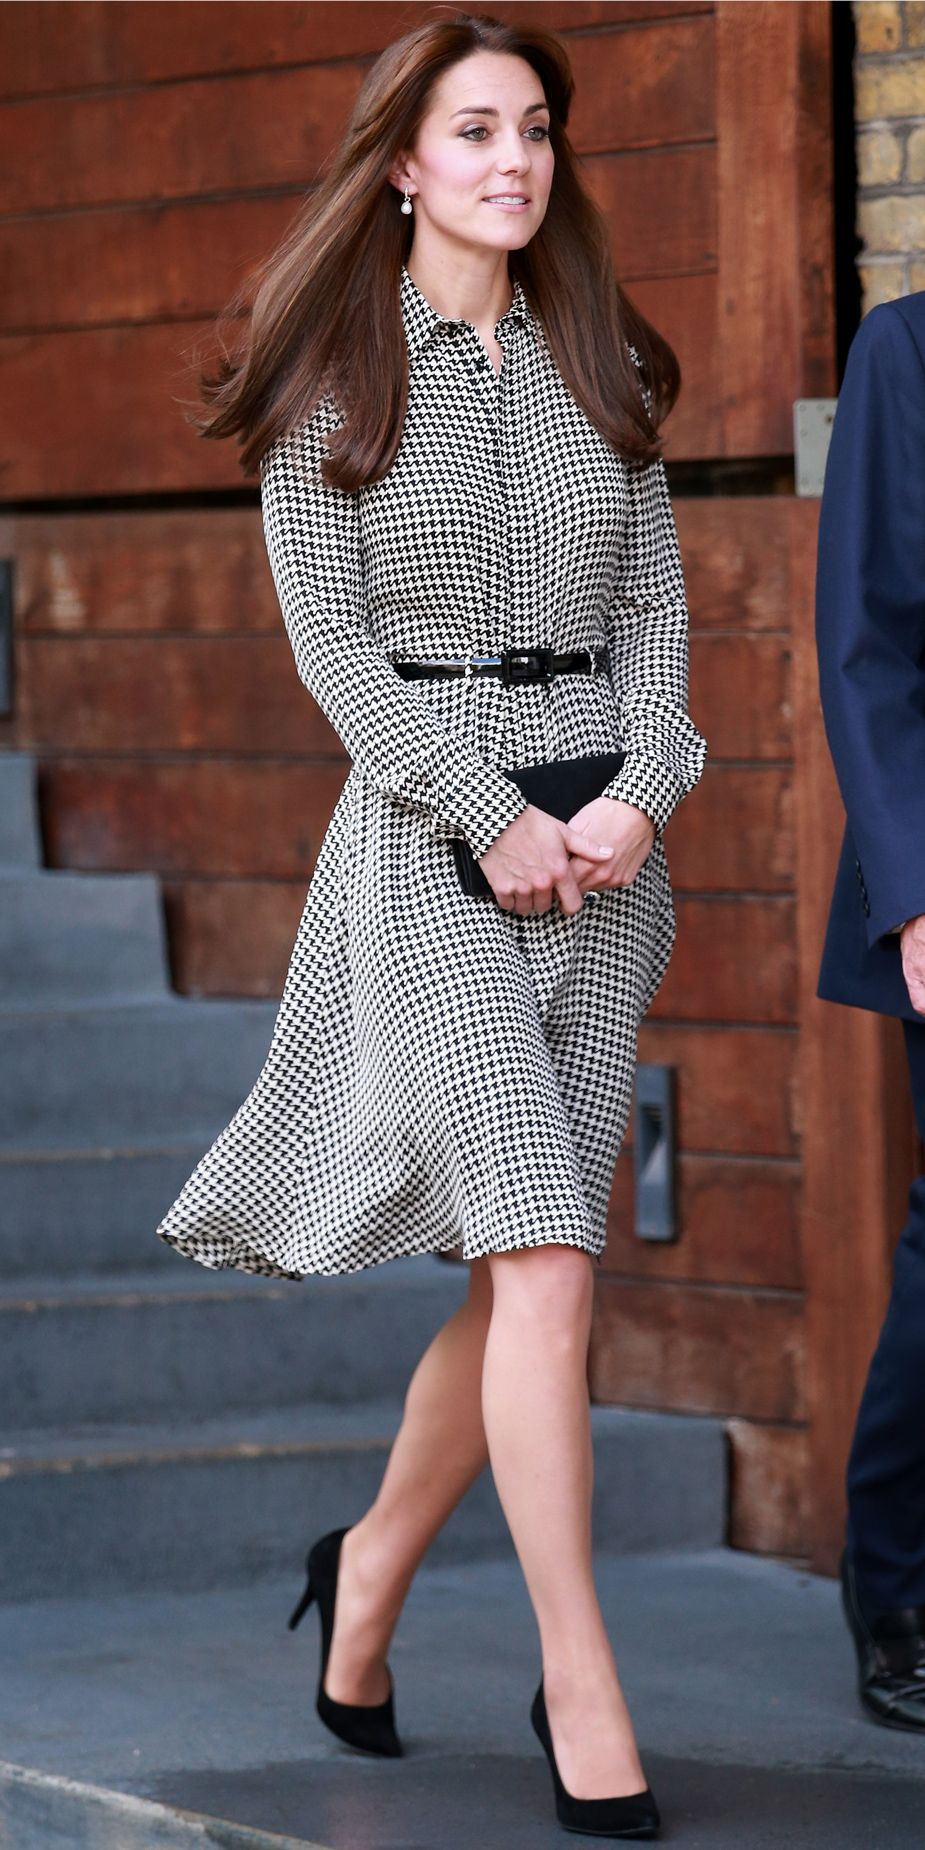 ad74c740e97e Kate Middleton s Most Memorable Outfits Ever! - September 17